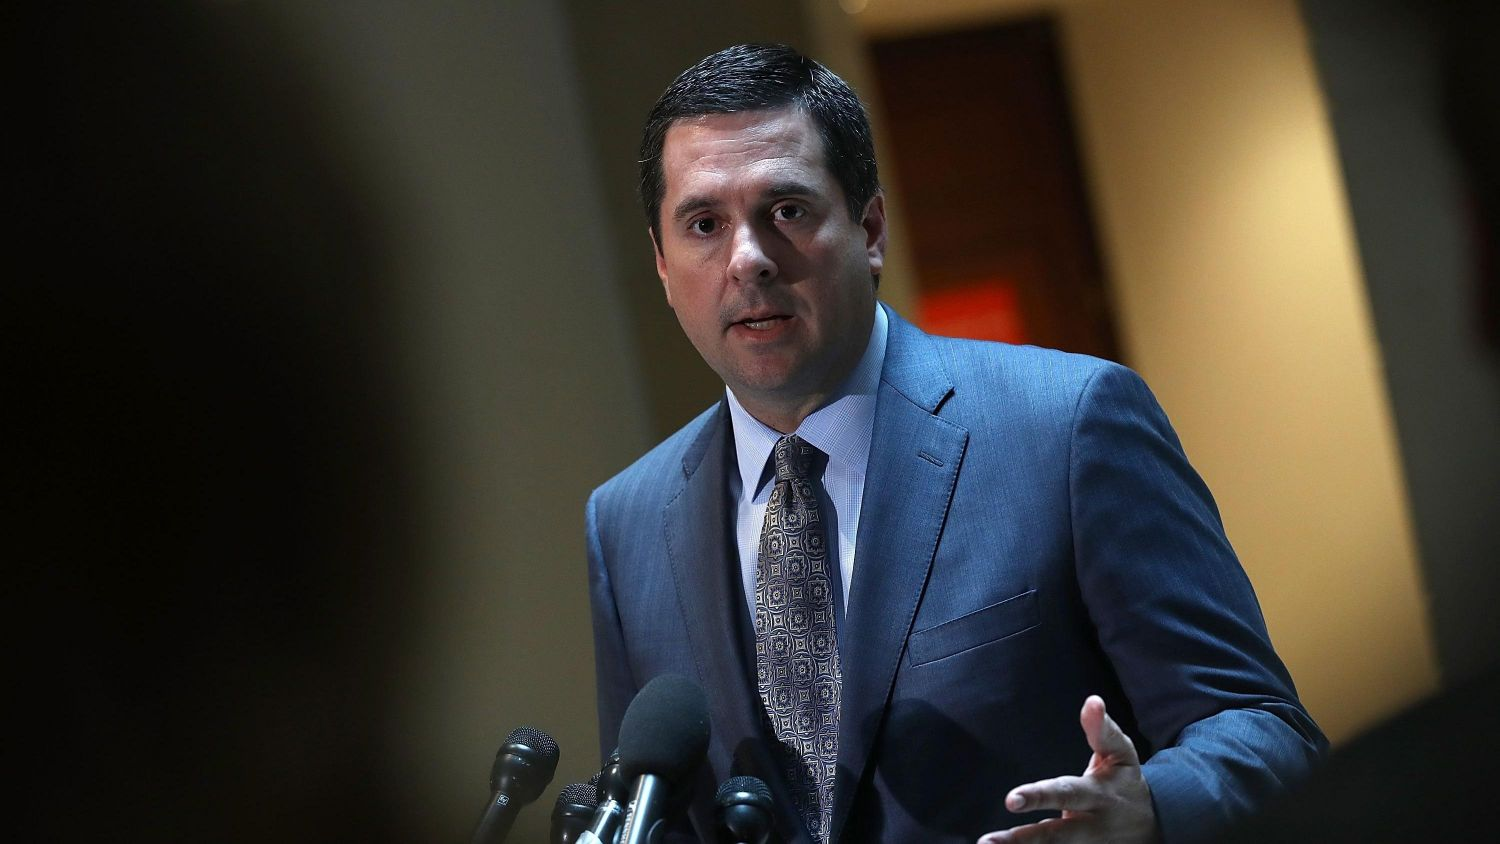 Devin Nunes handling of the Russia investigation has raised the California congressmans national profile but it may make his reelection harder